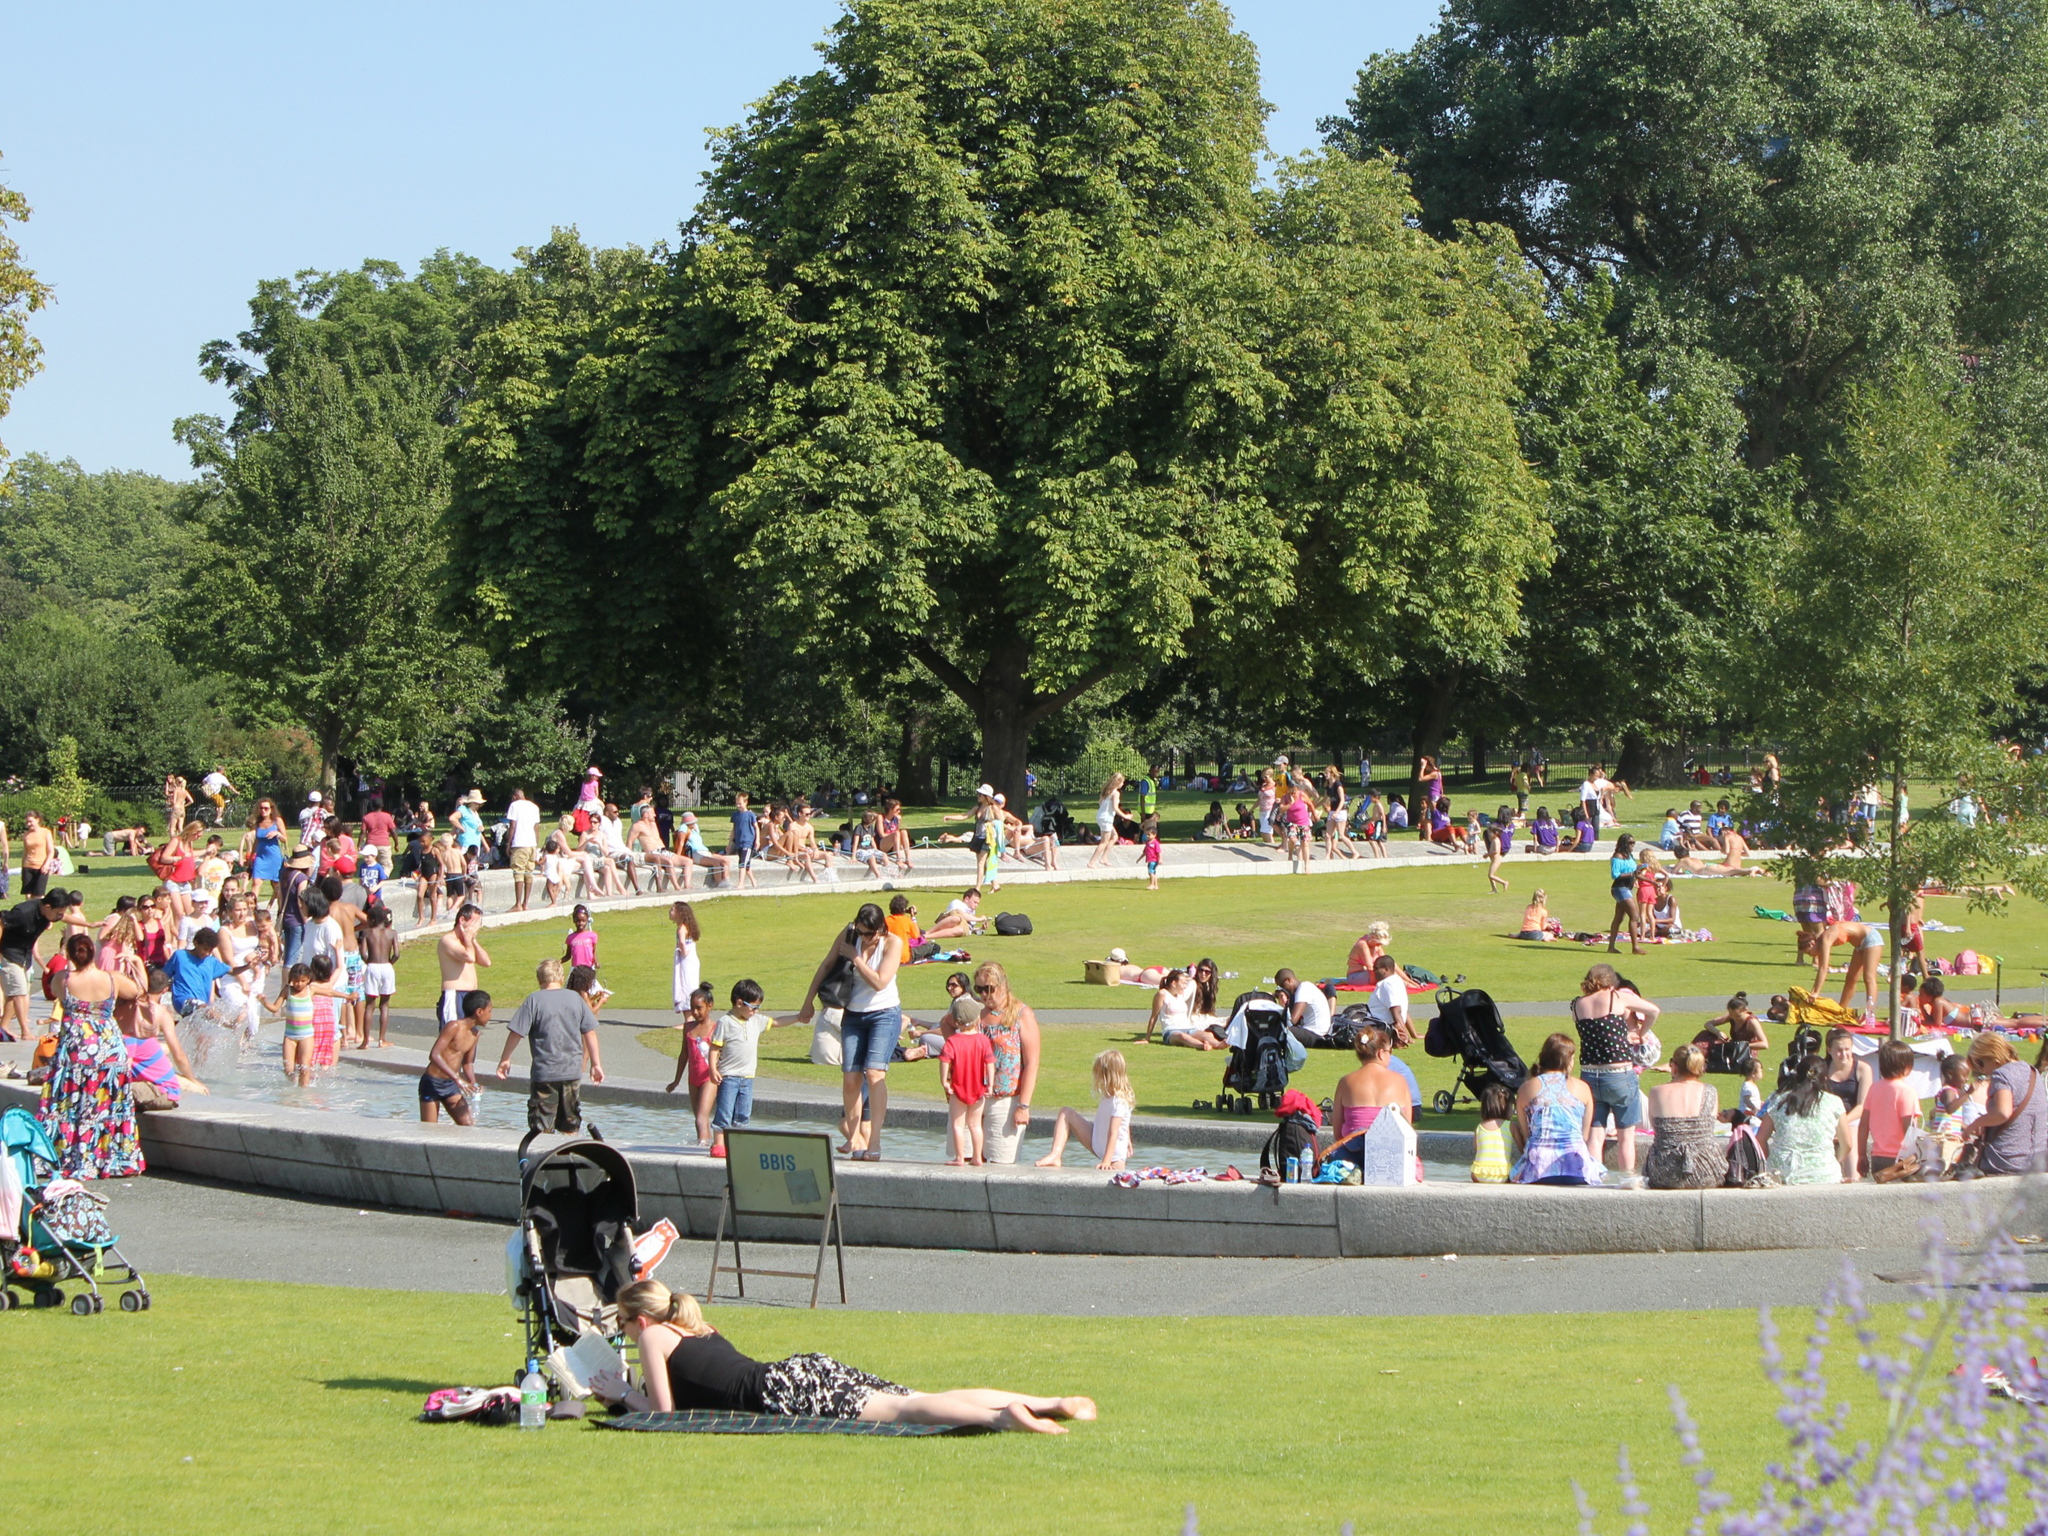 101 things to do in London with kids, Princess Diana Fountain